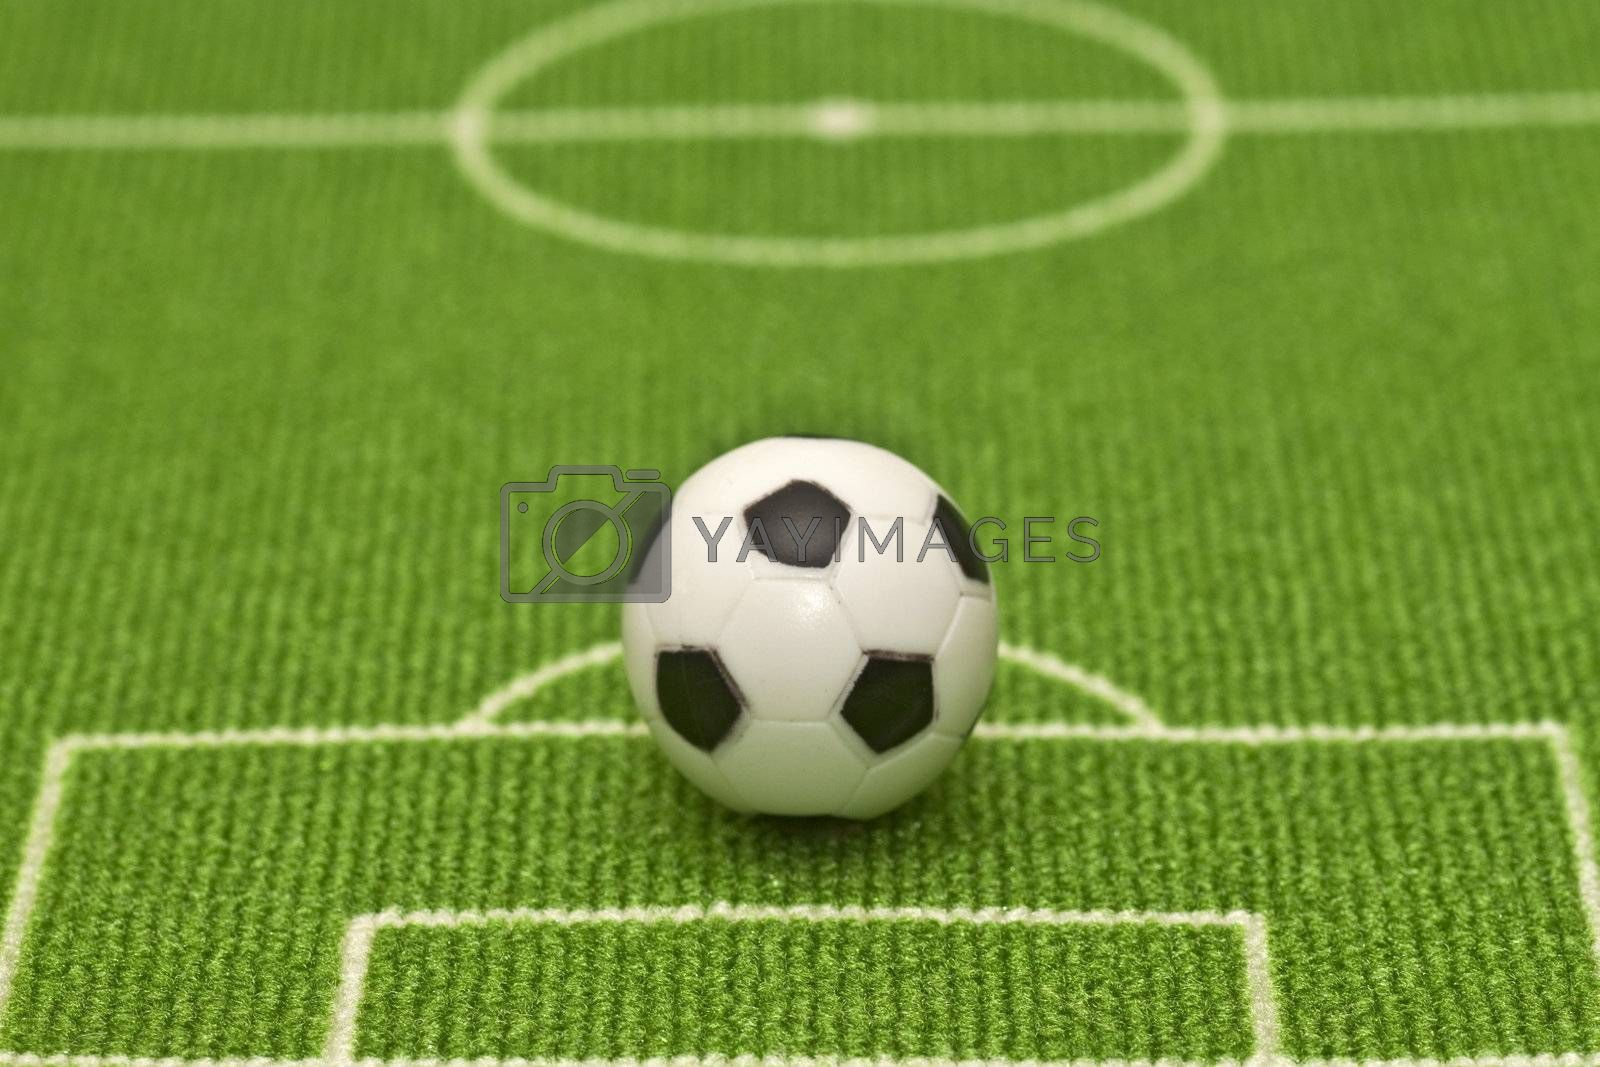 Symbol photo toy soccer ball on a football field. Shot in studio.